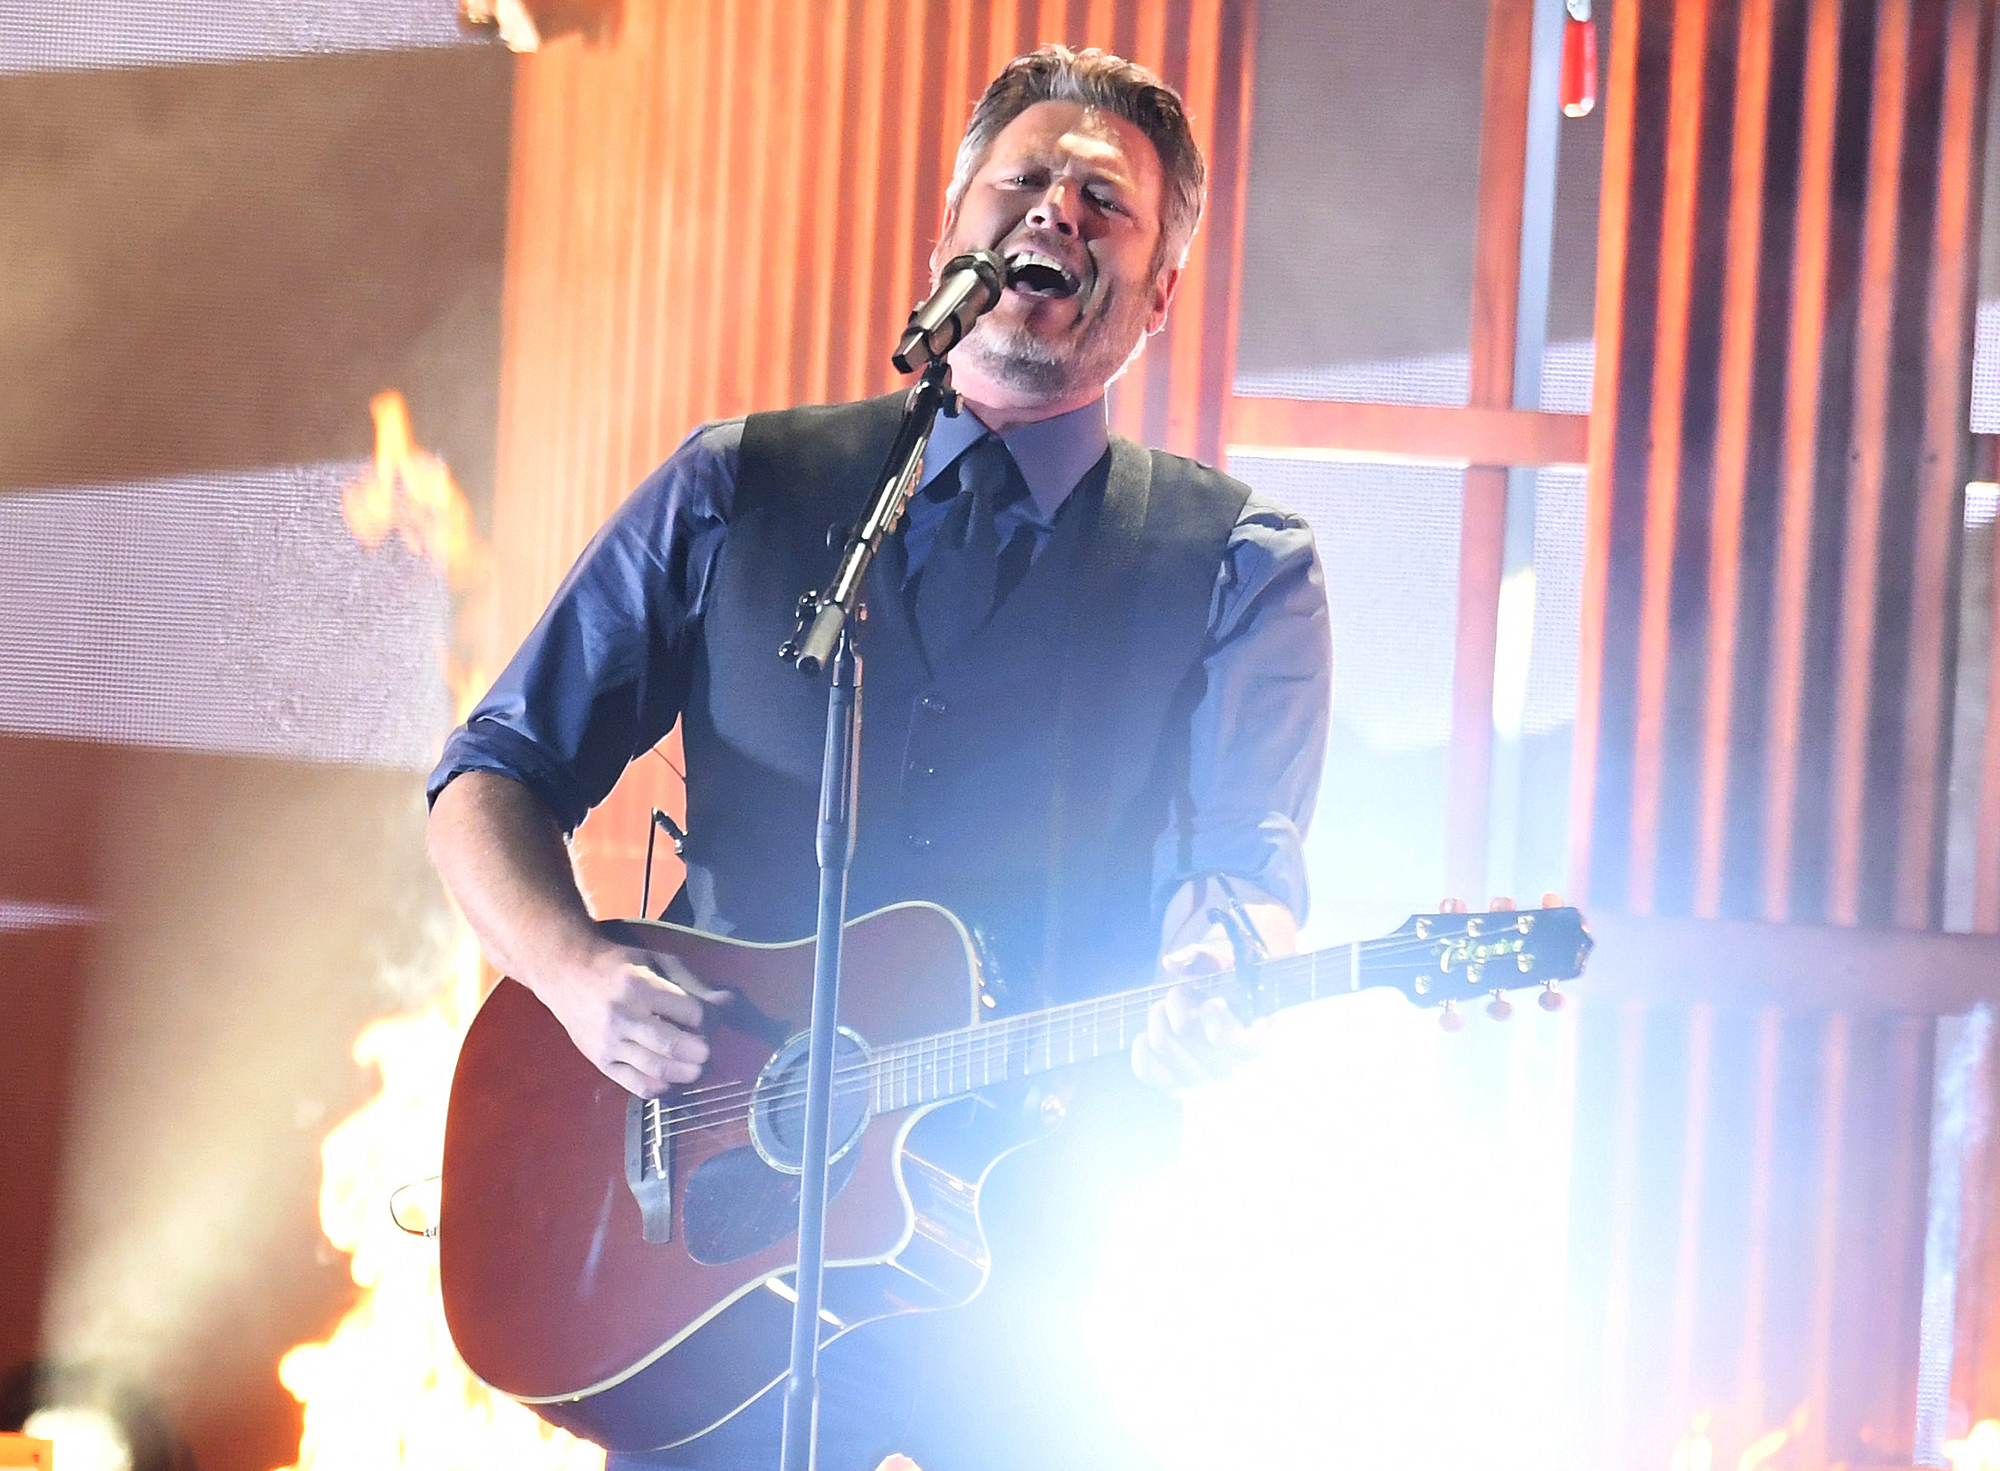 Blake Shelton performs at the CMA Awards 2019